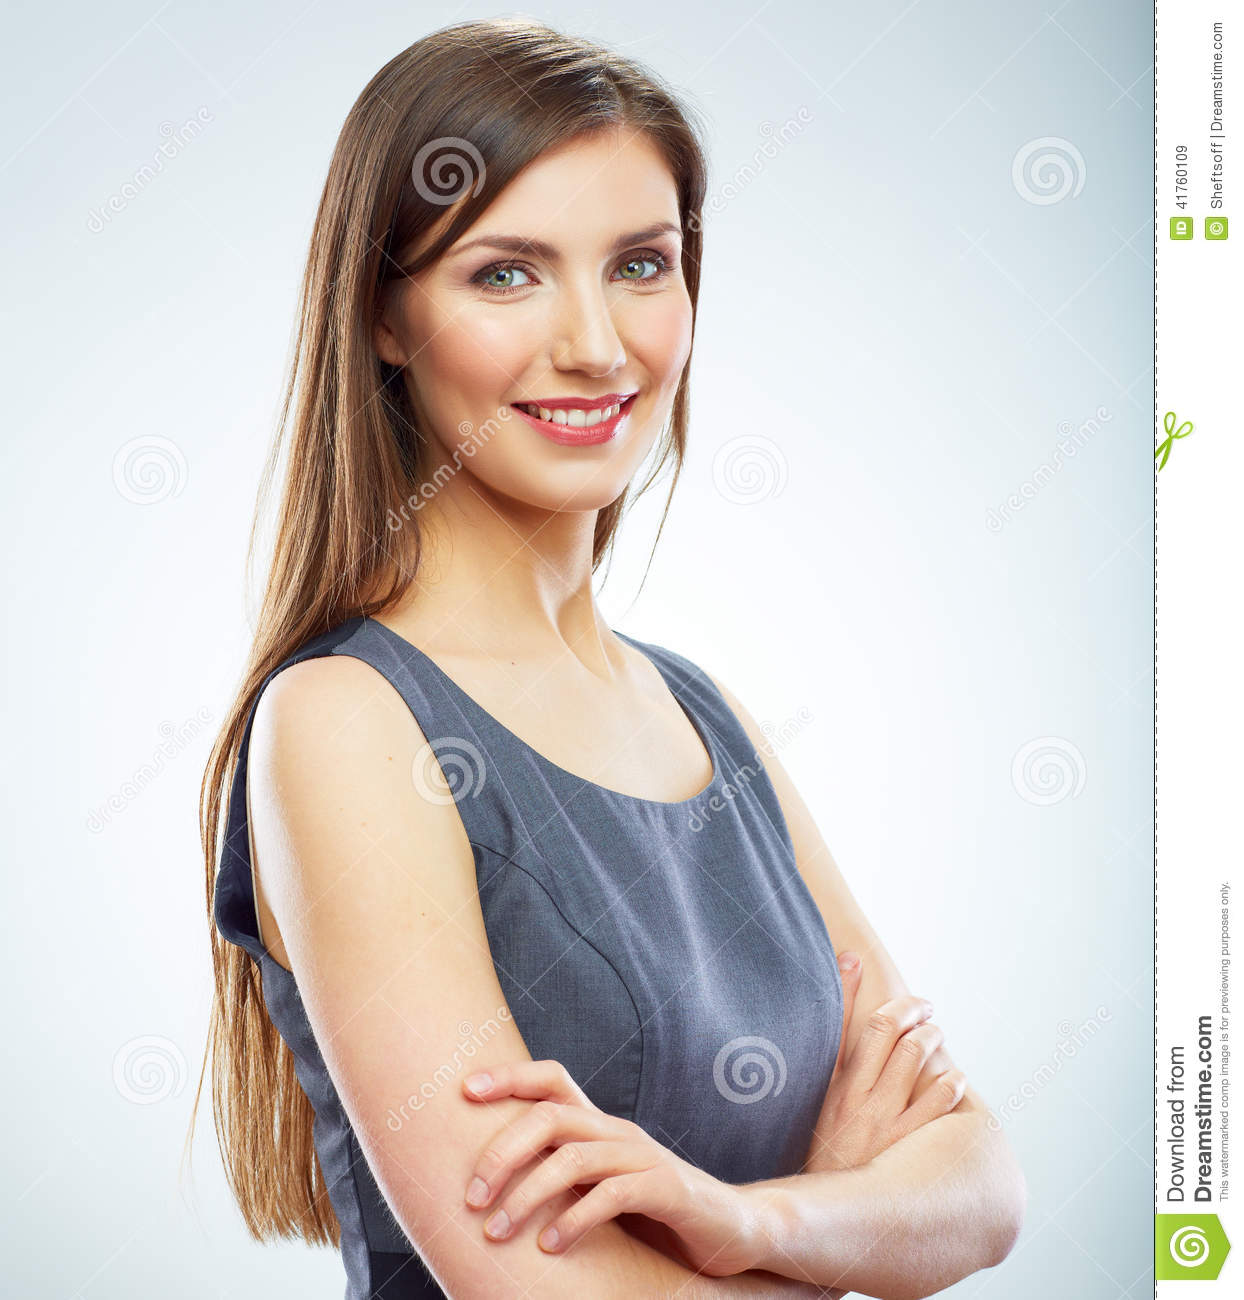 Business: Portrait Of Young Smiling Business Woman White Background